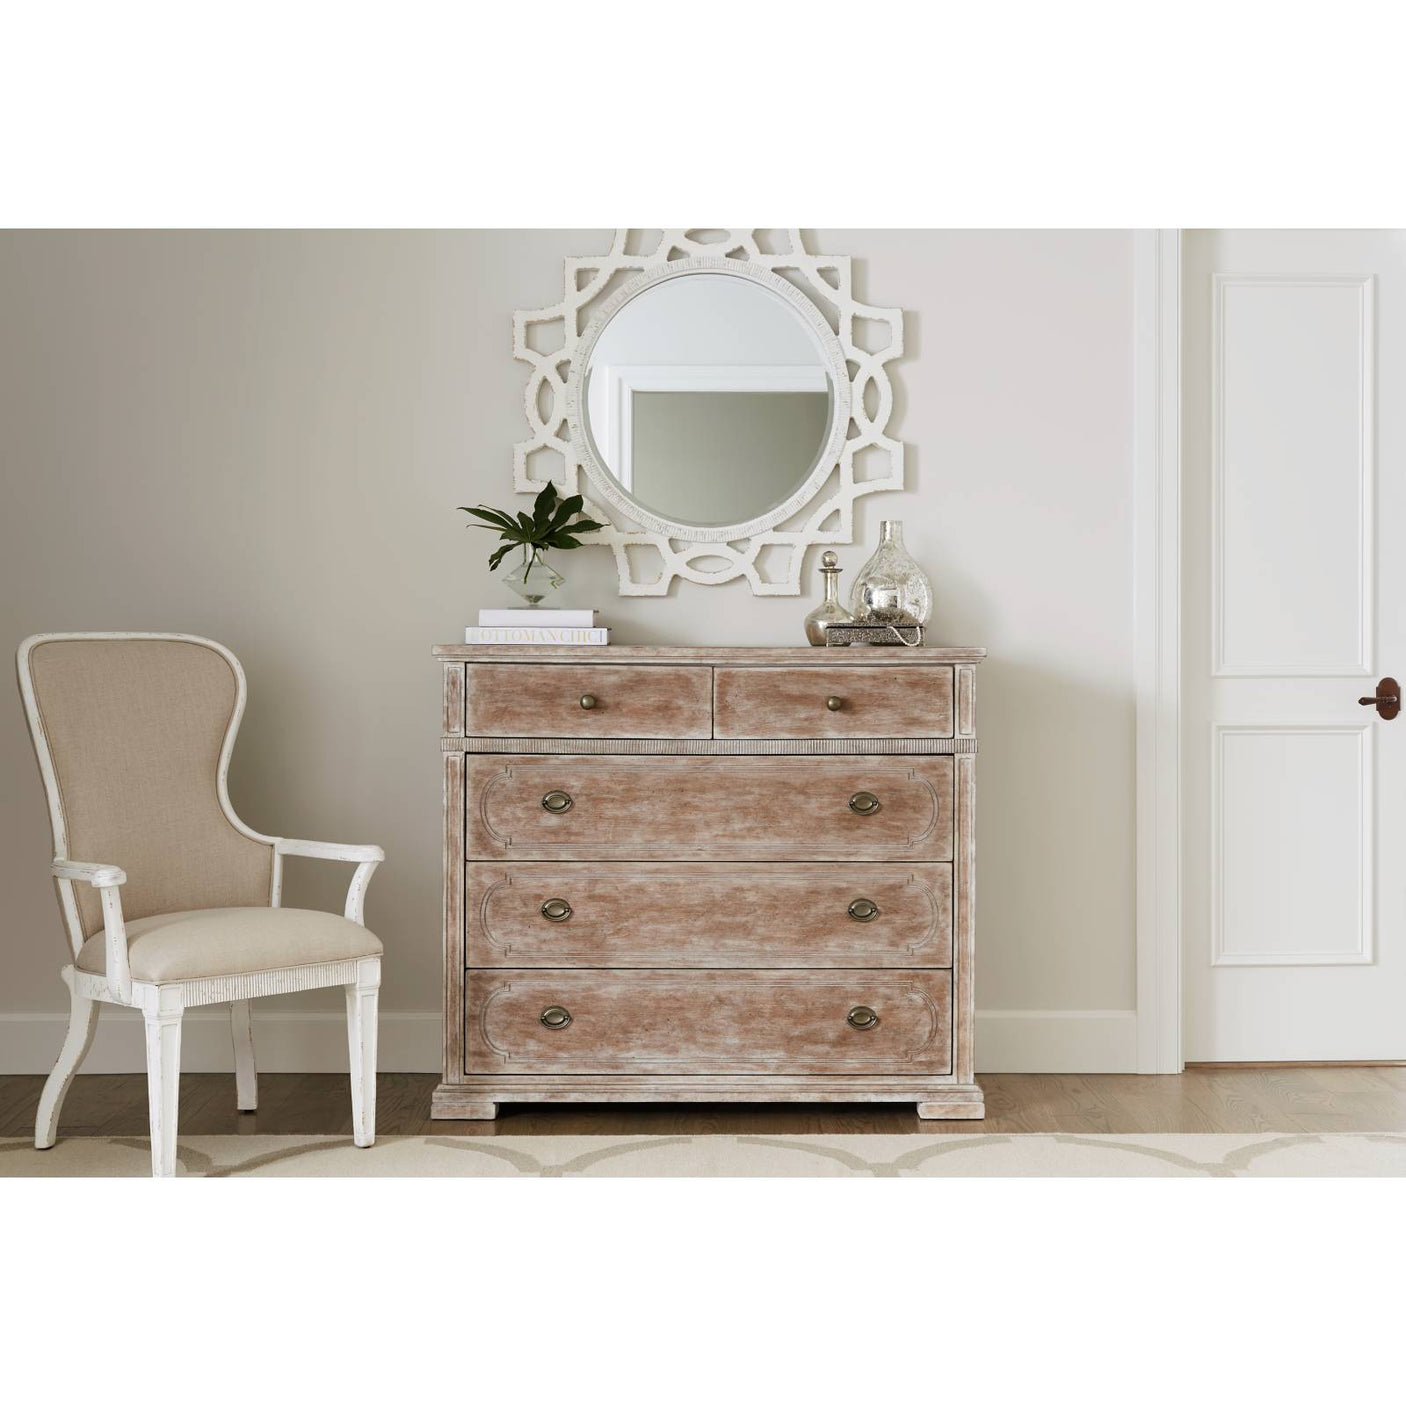 a22ebdb07d8 Juniper Dell Accent Mirror – Stanley Furniture